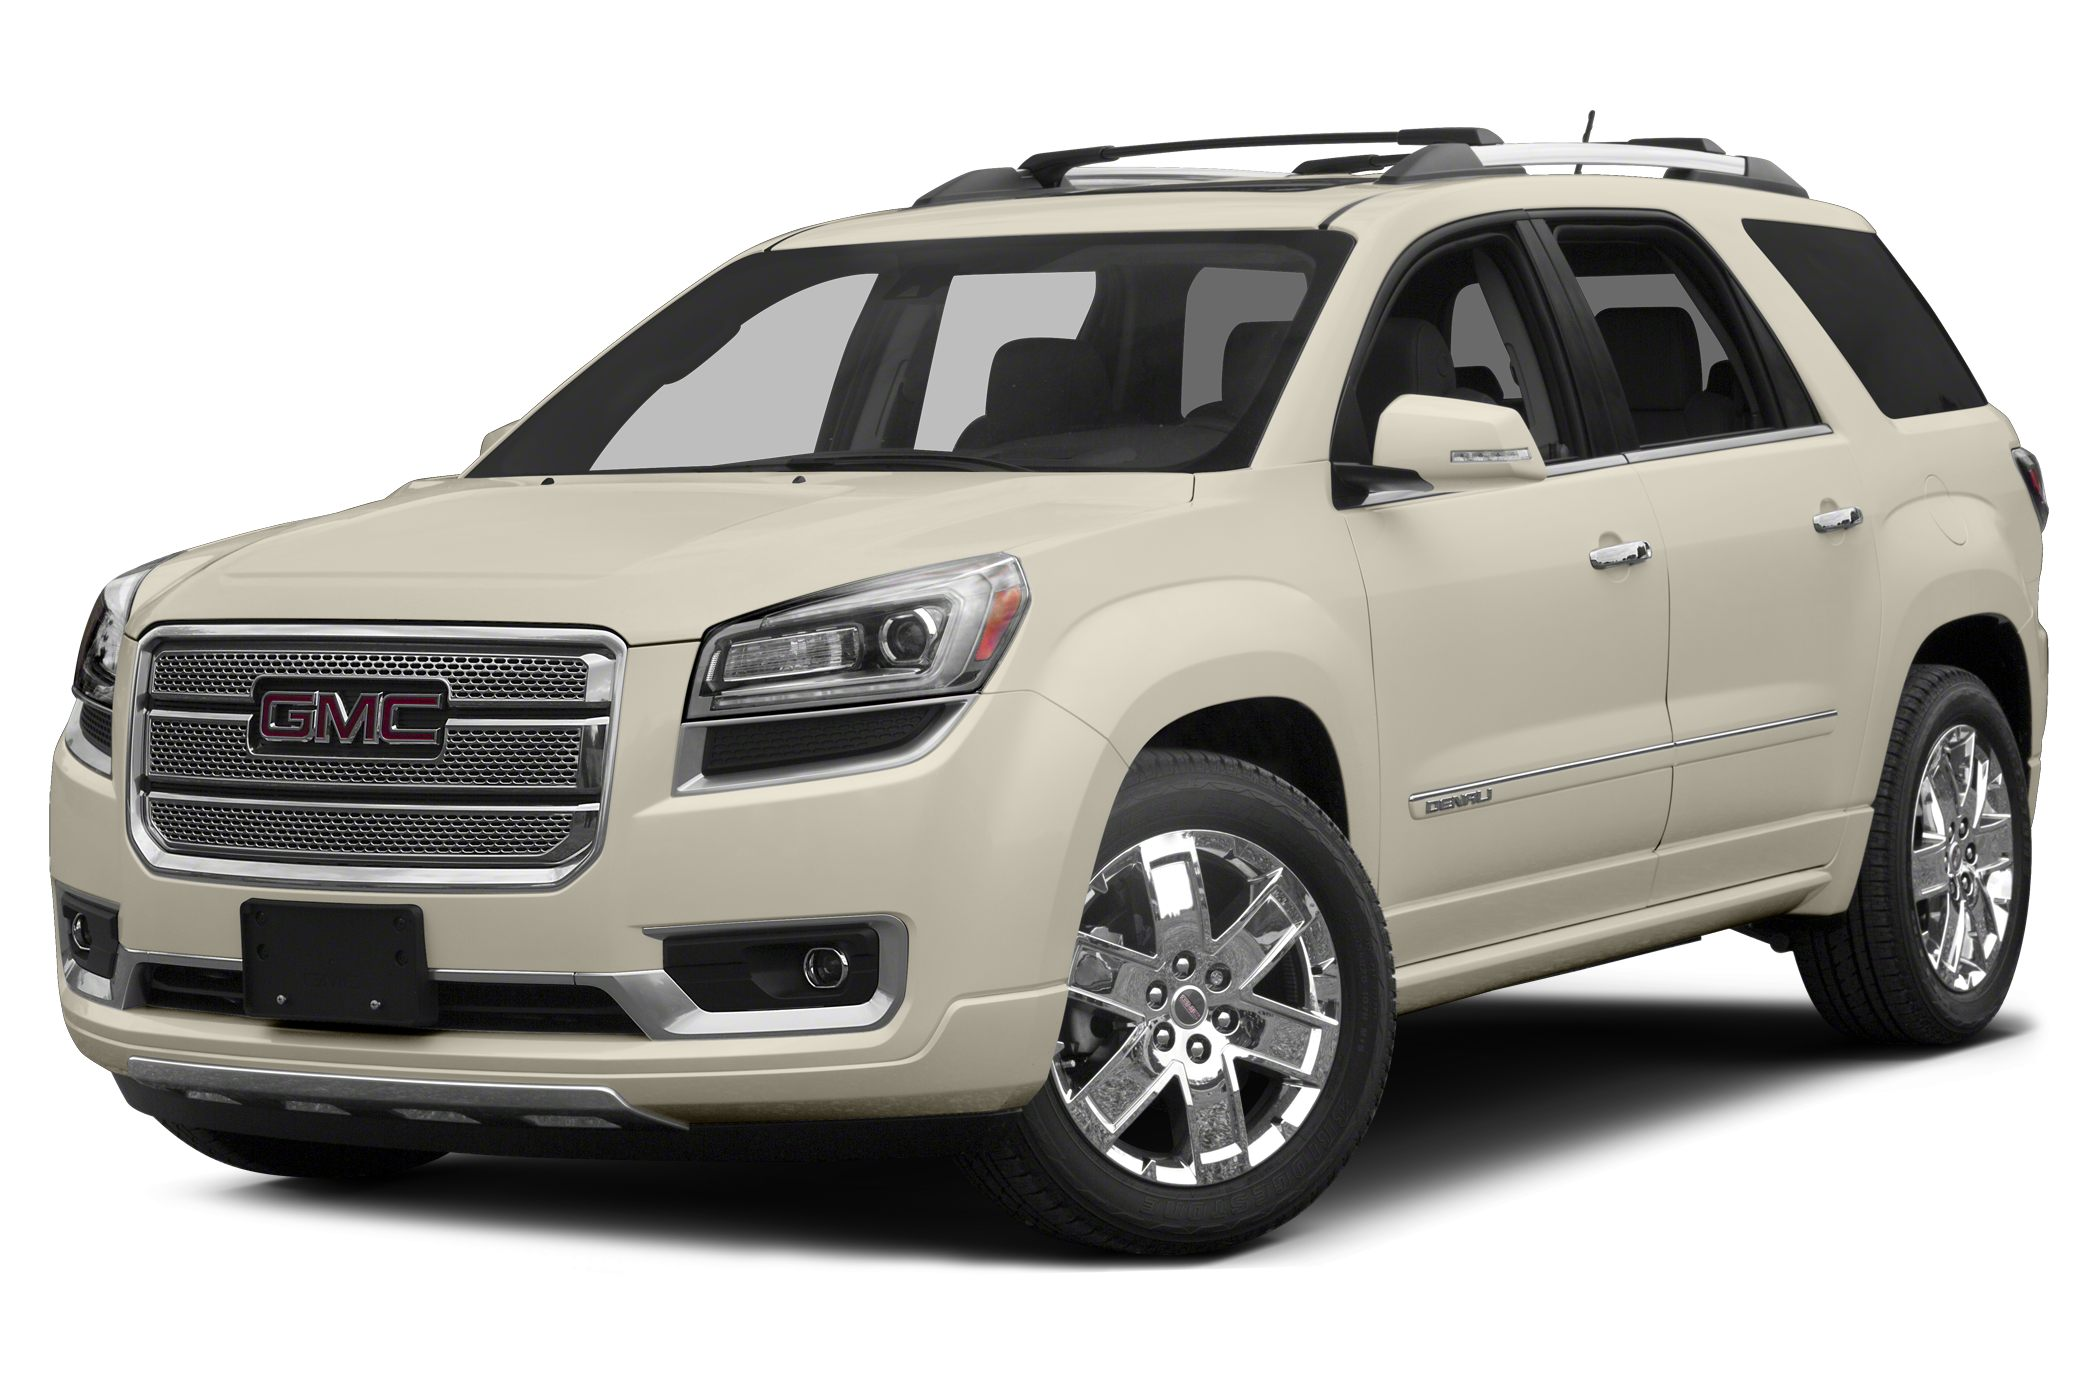 2015 GMC Acadia Denali SUV for sale in Alamogordo for $54,355 with 0 miles.